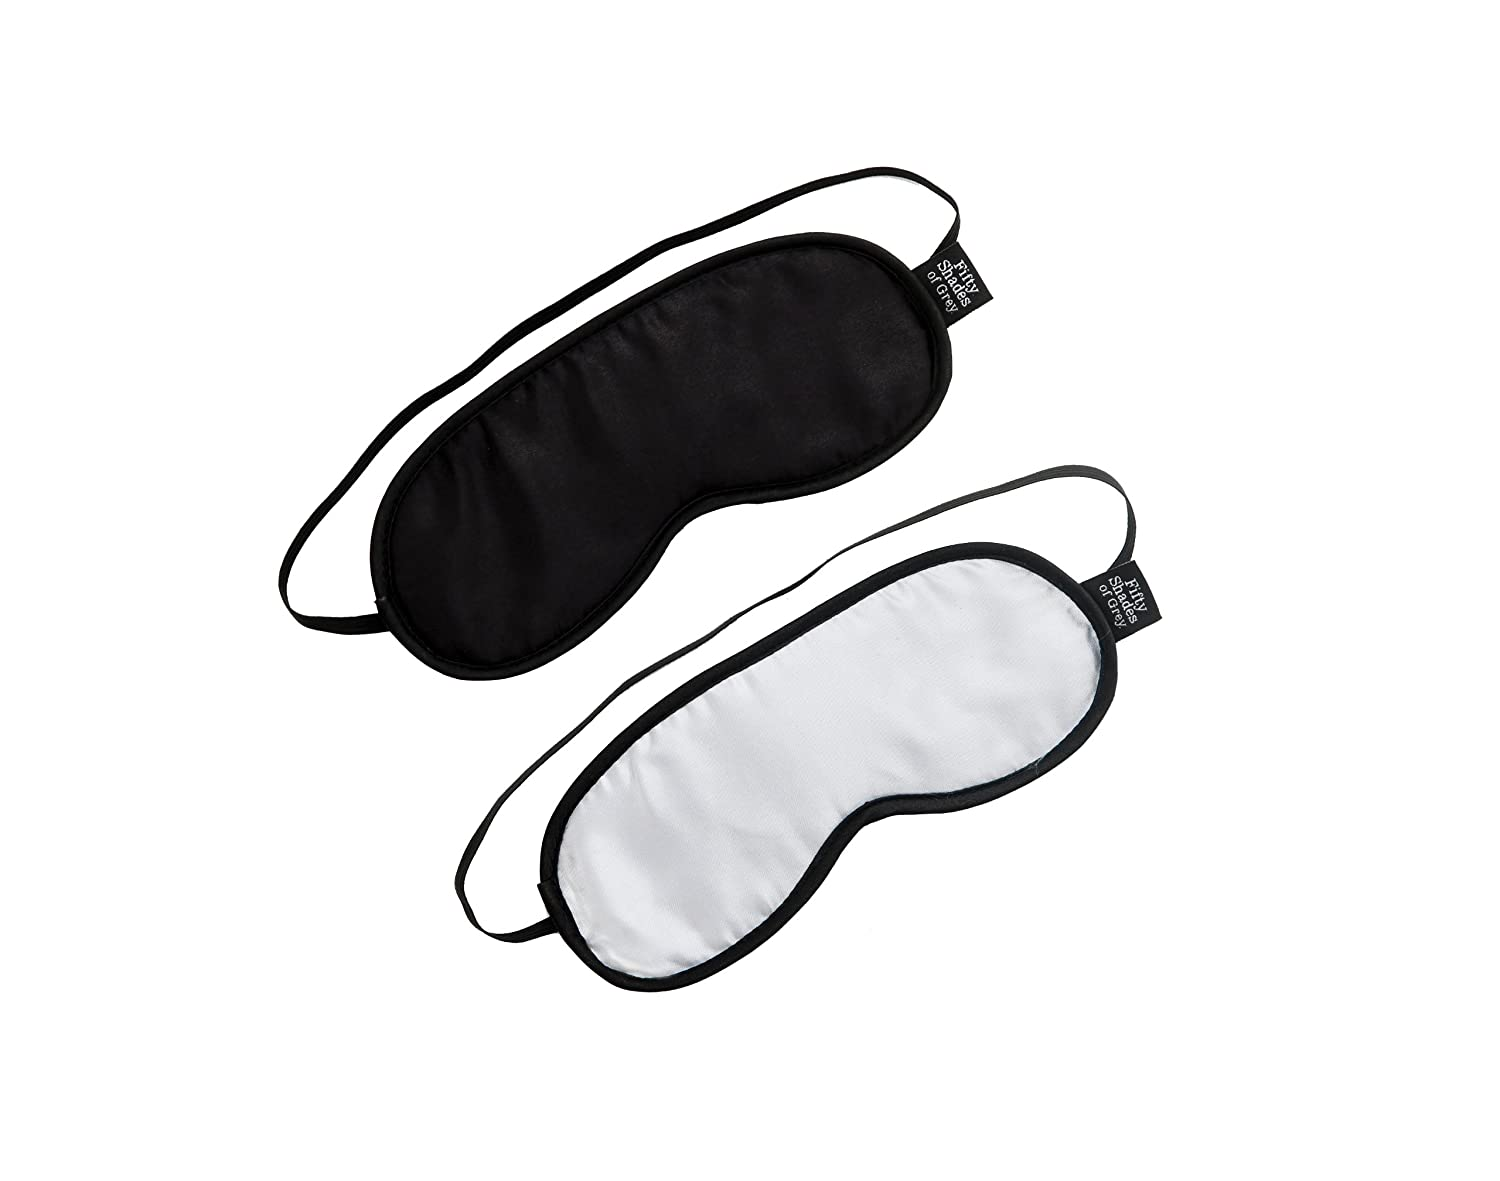 Fifty Shades Of Grey No Peeking Blindfold Twin Pack мини вибратор svakom daisy розовый